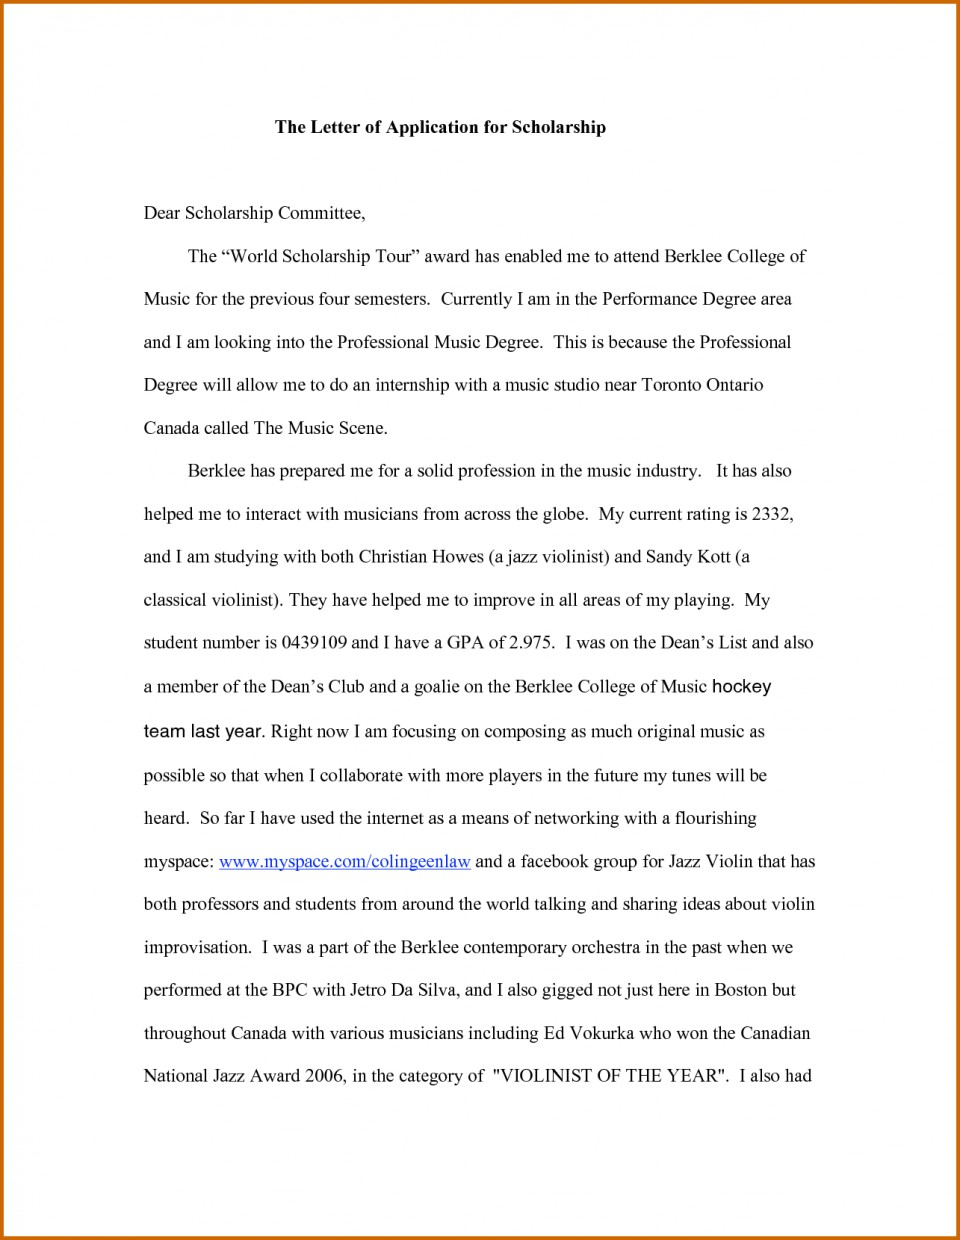 008 What To Write In Scholarship Essay Writer My How Personal Statement For Scholarships Application Good Shocking 2018 International Students Examples Canada 2019 960